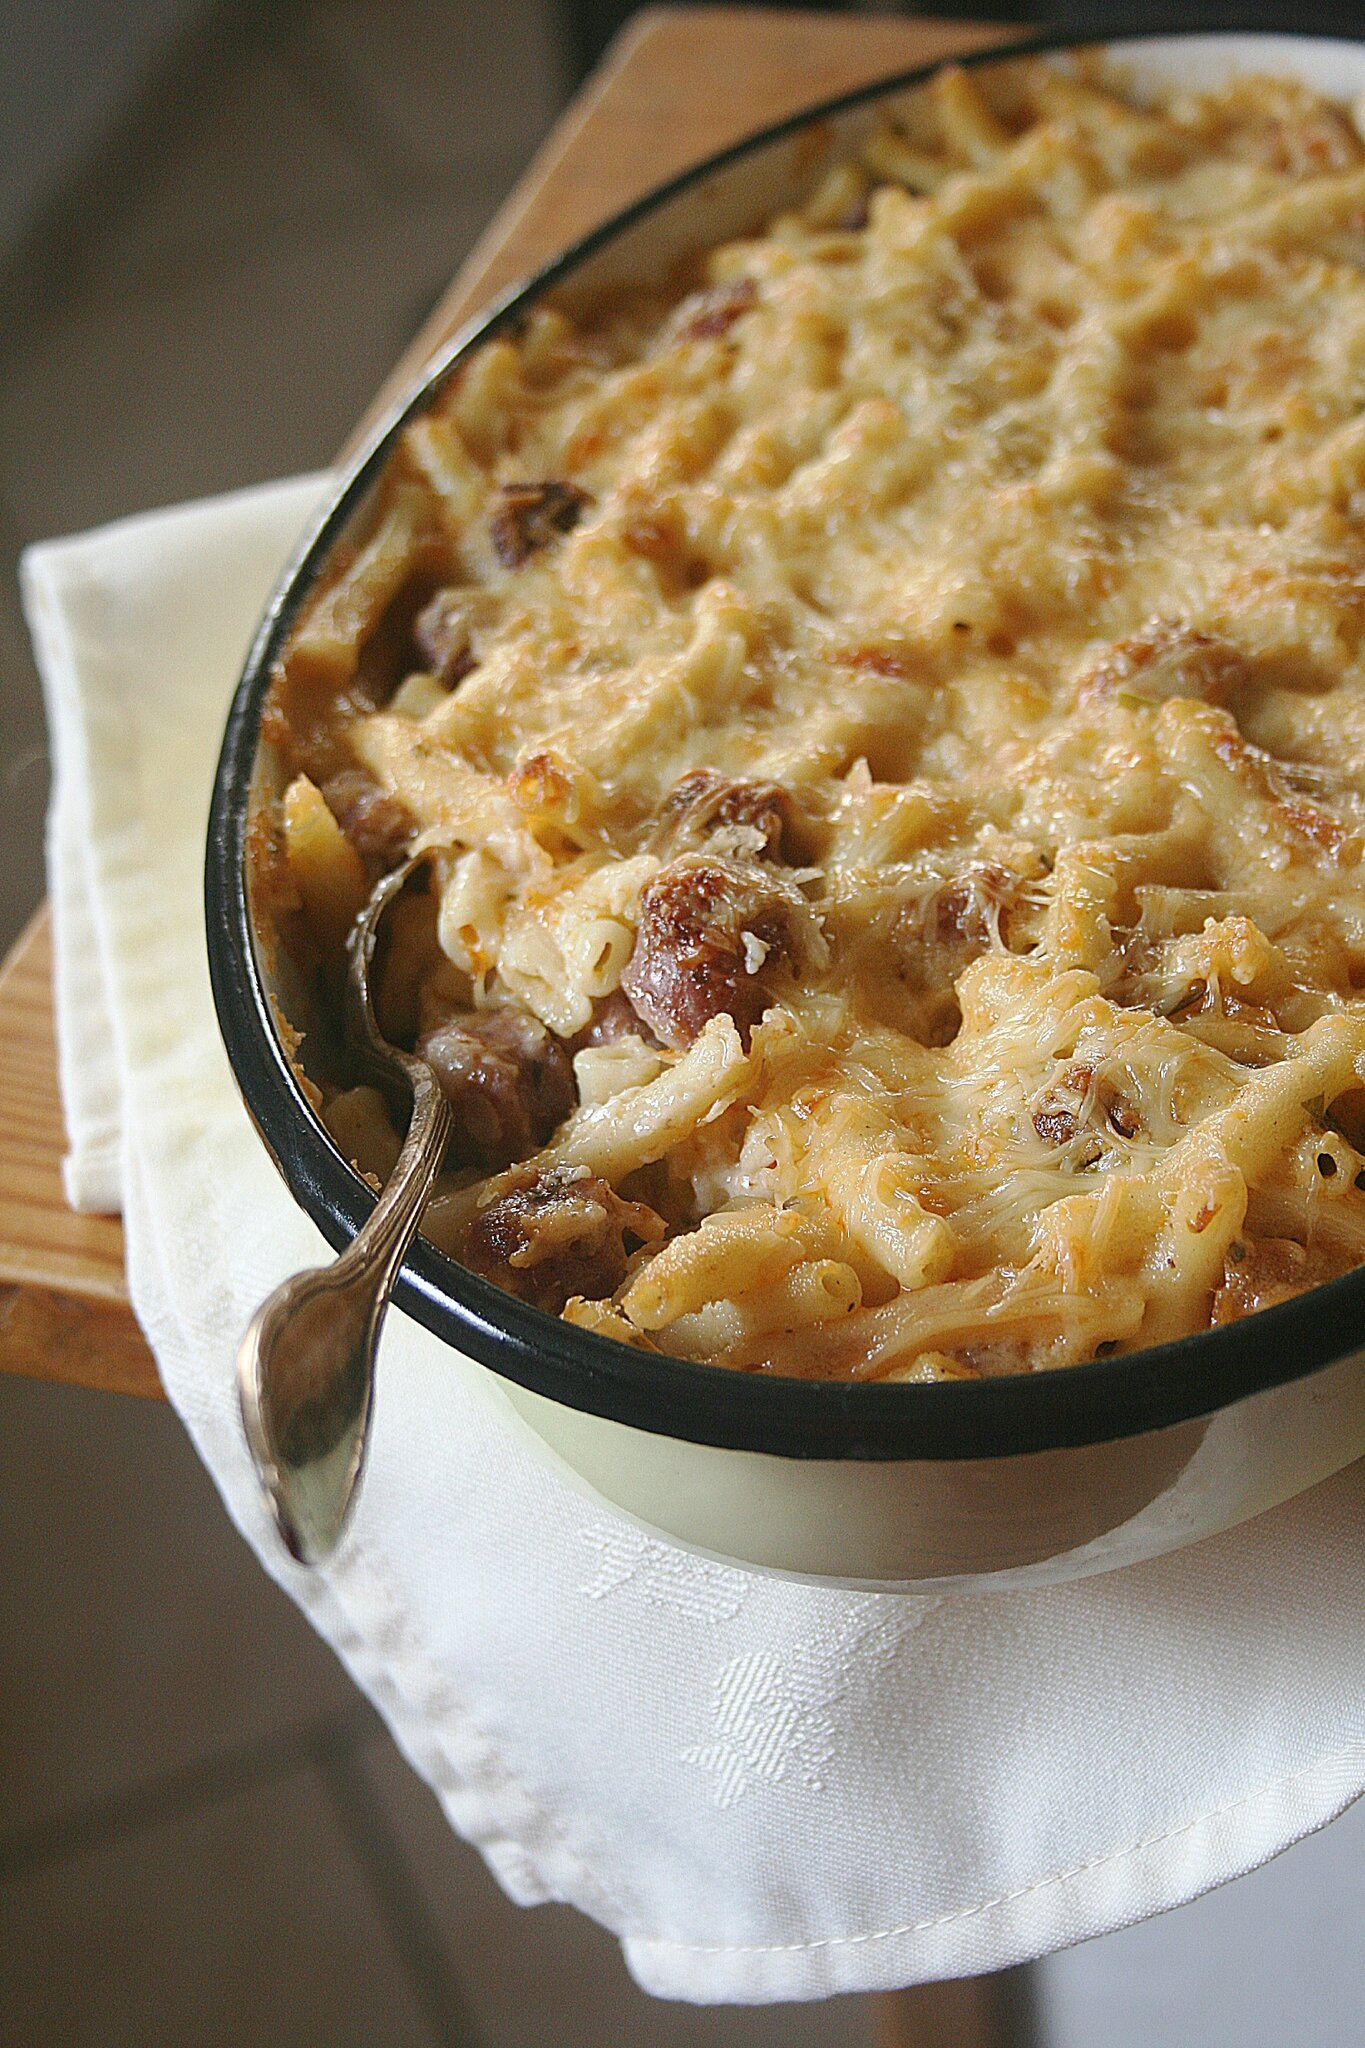 Mac'n'cheese aux merguez